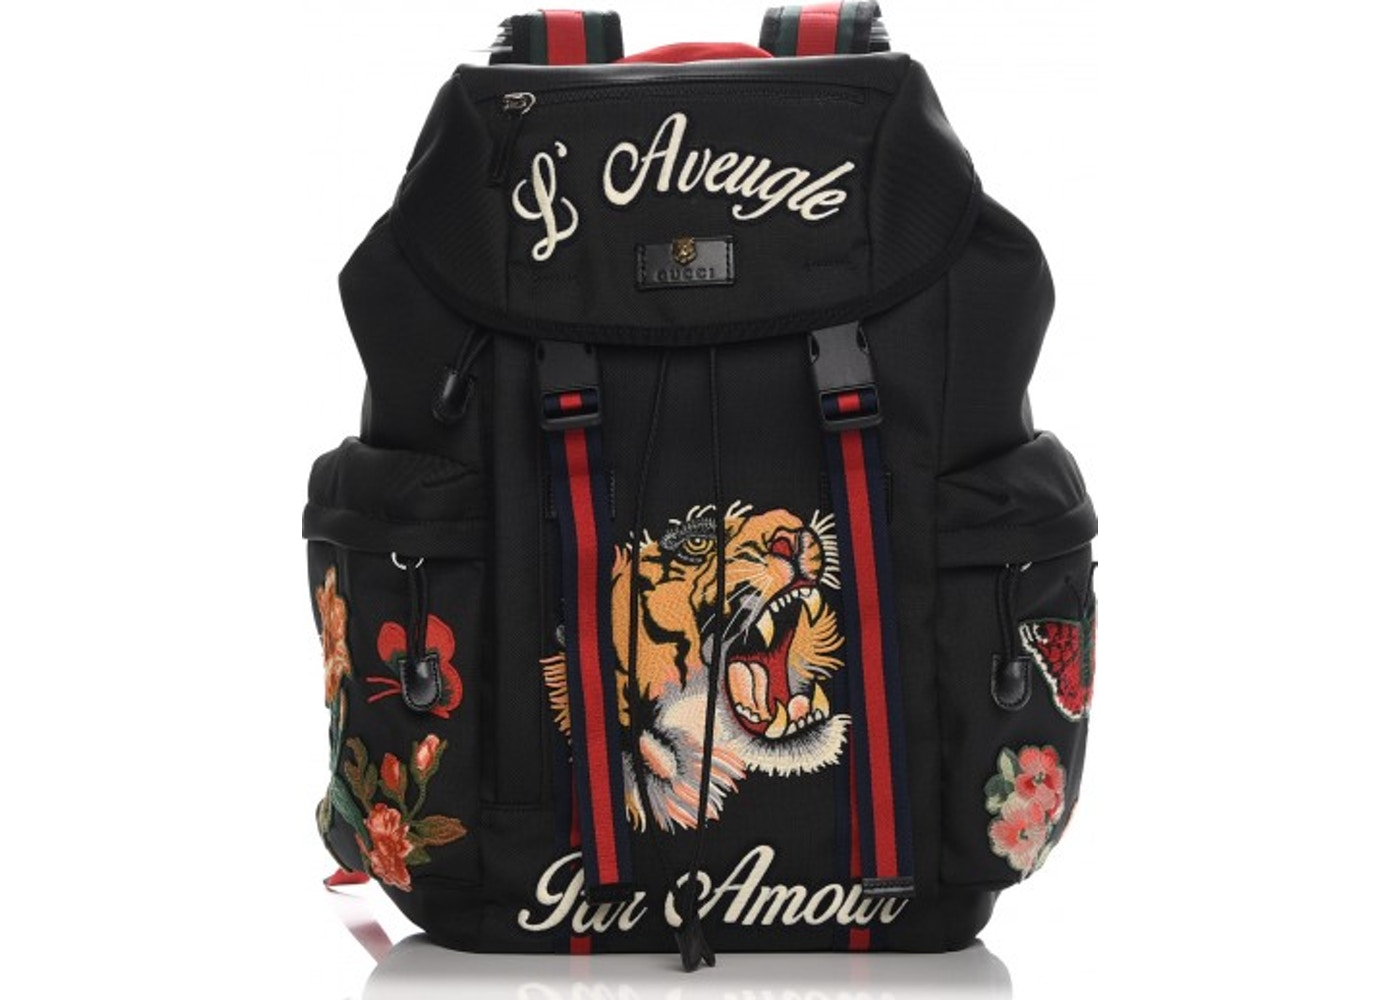 Gucci Embroidered Drawstring Backpack - CEAGESP 111bac092c1f